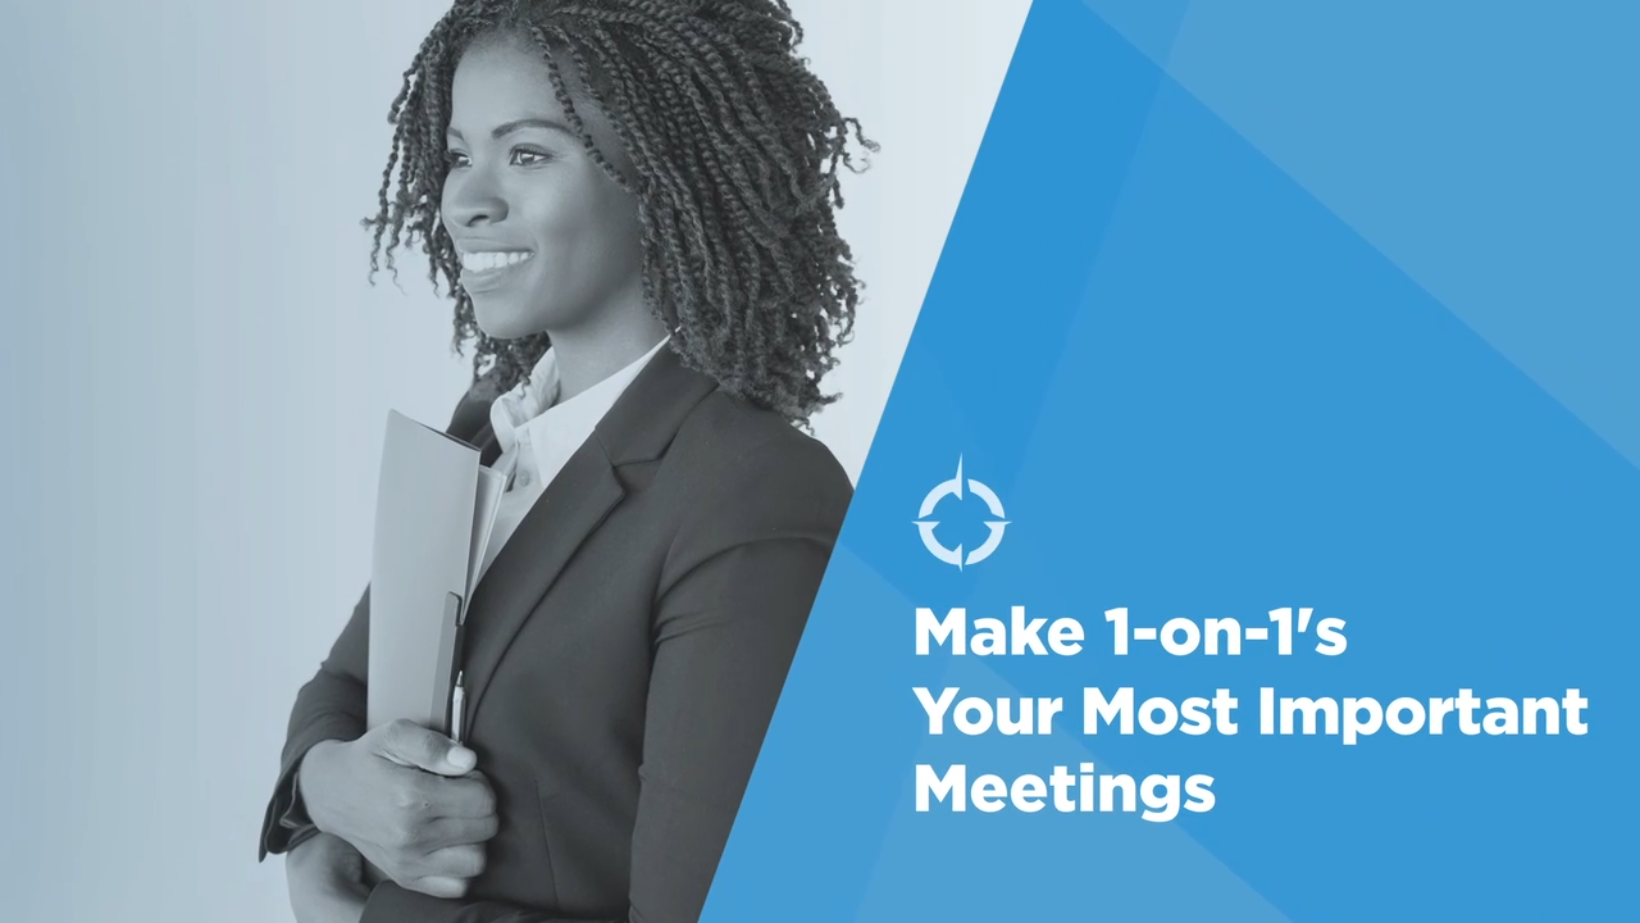 Video: Be a Better Leader: Make 1:1s Your Most Important Meetings